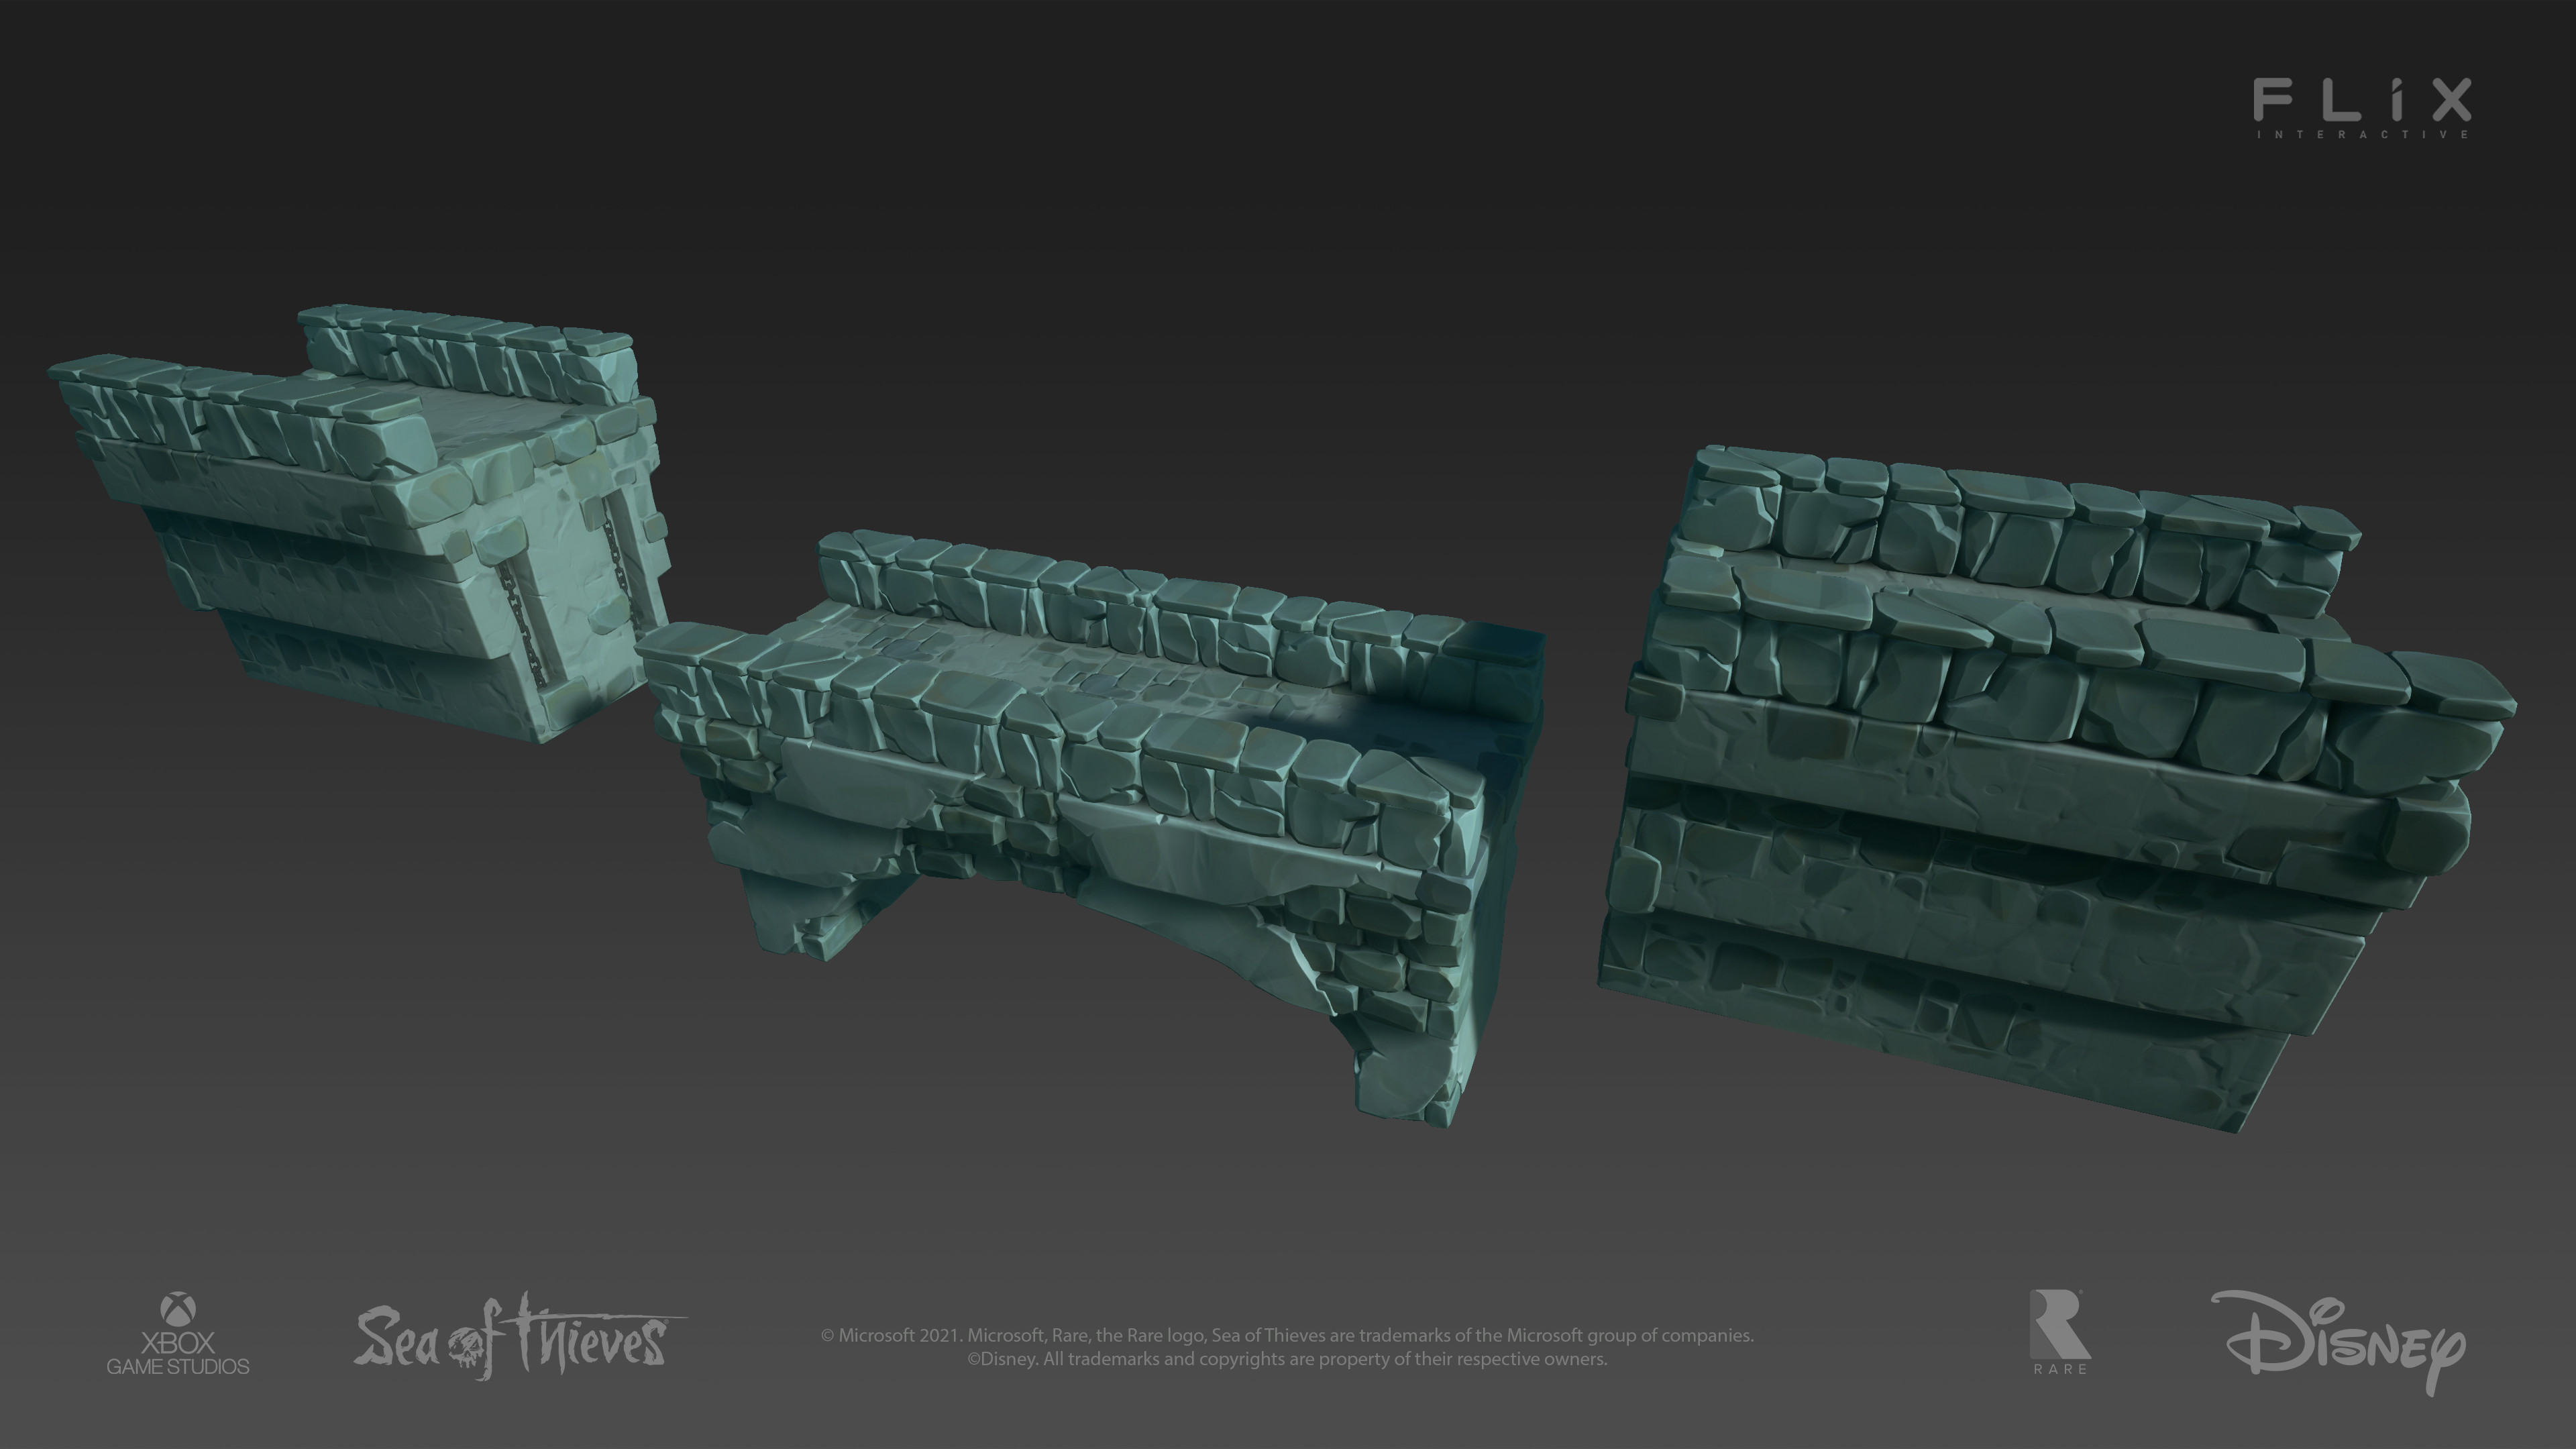 Low Poly & Texturing by Me. Bridge Asset High Poly created by Glenn Donaldson.